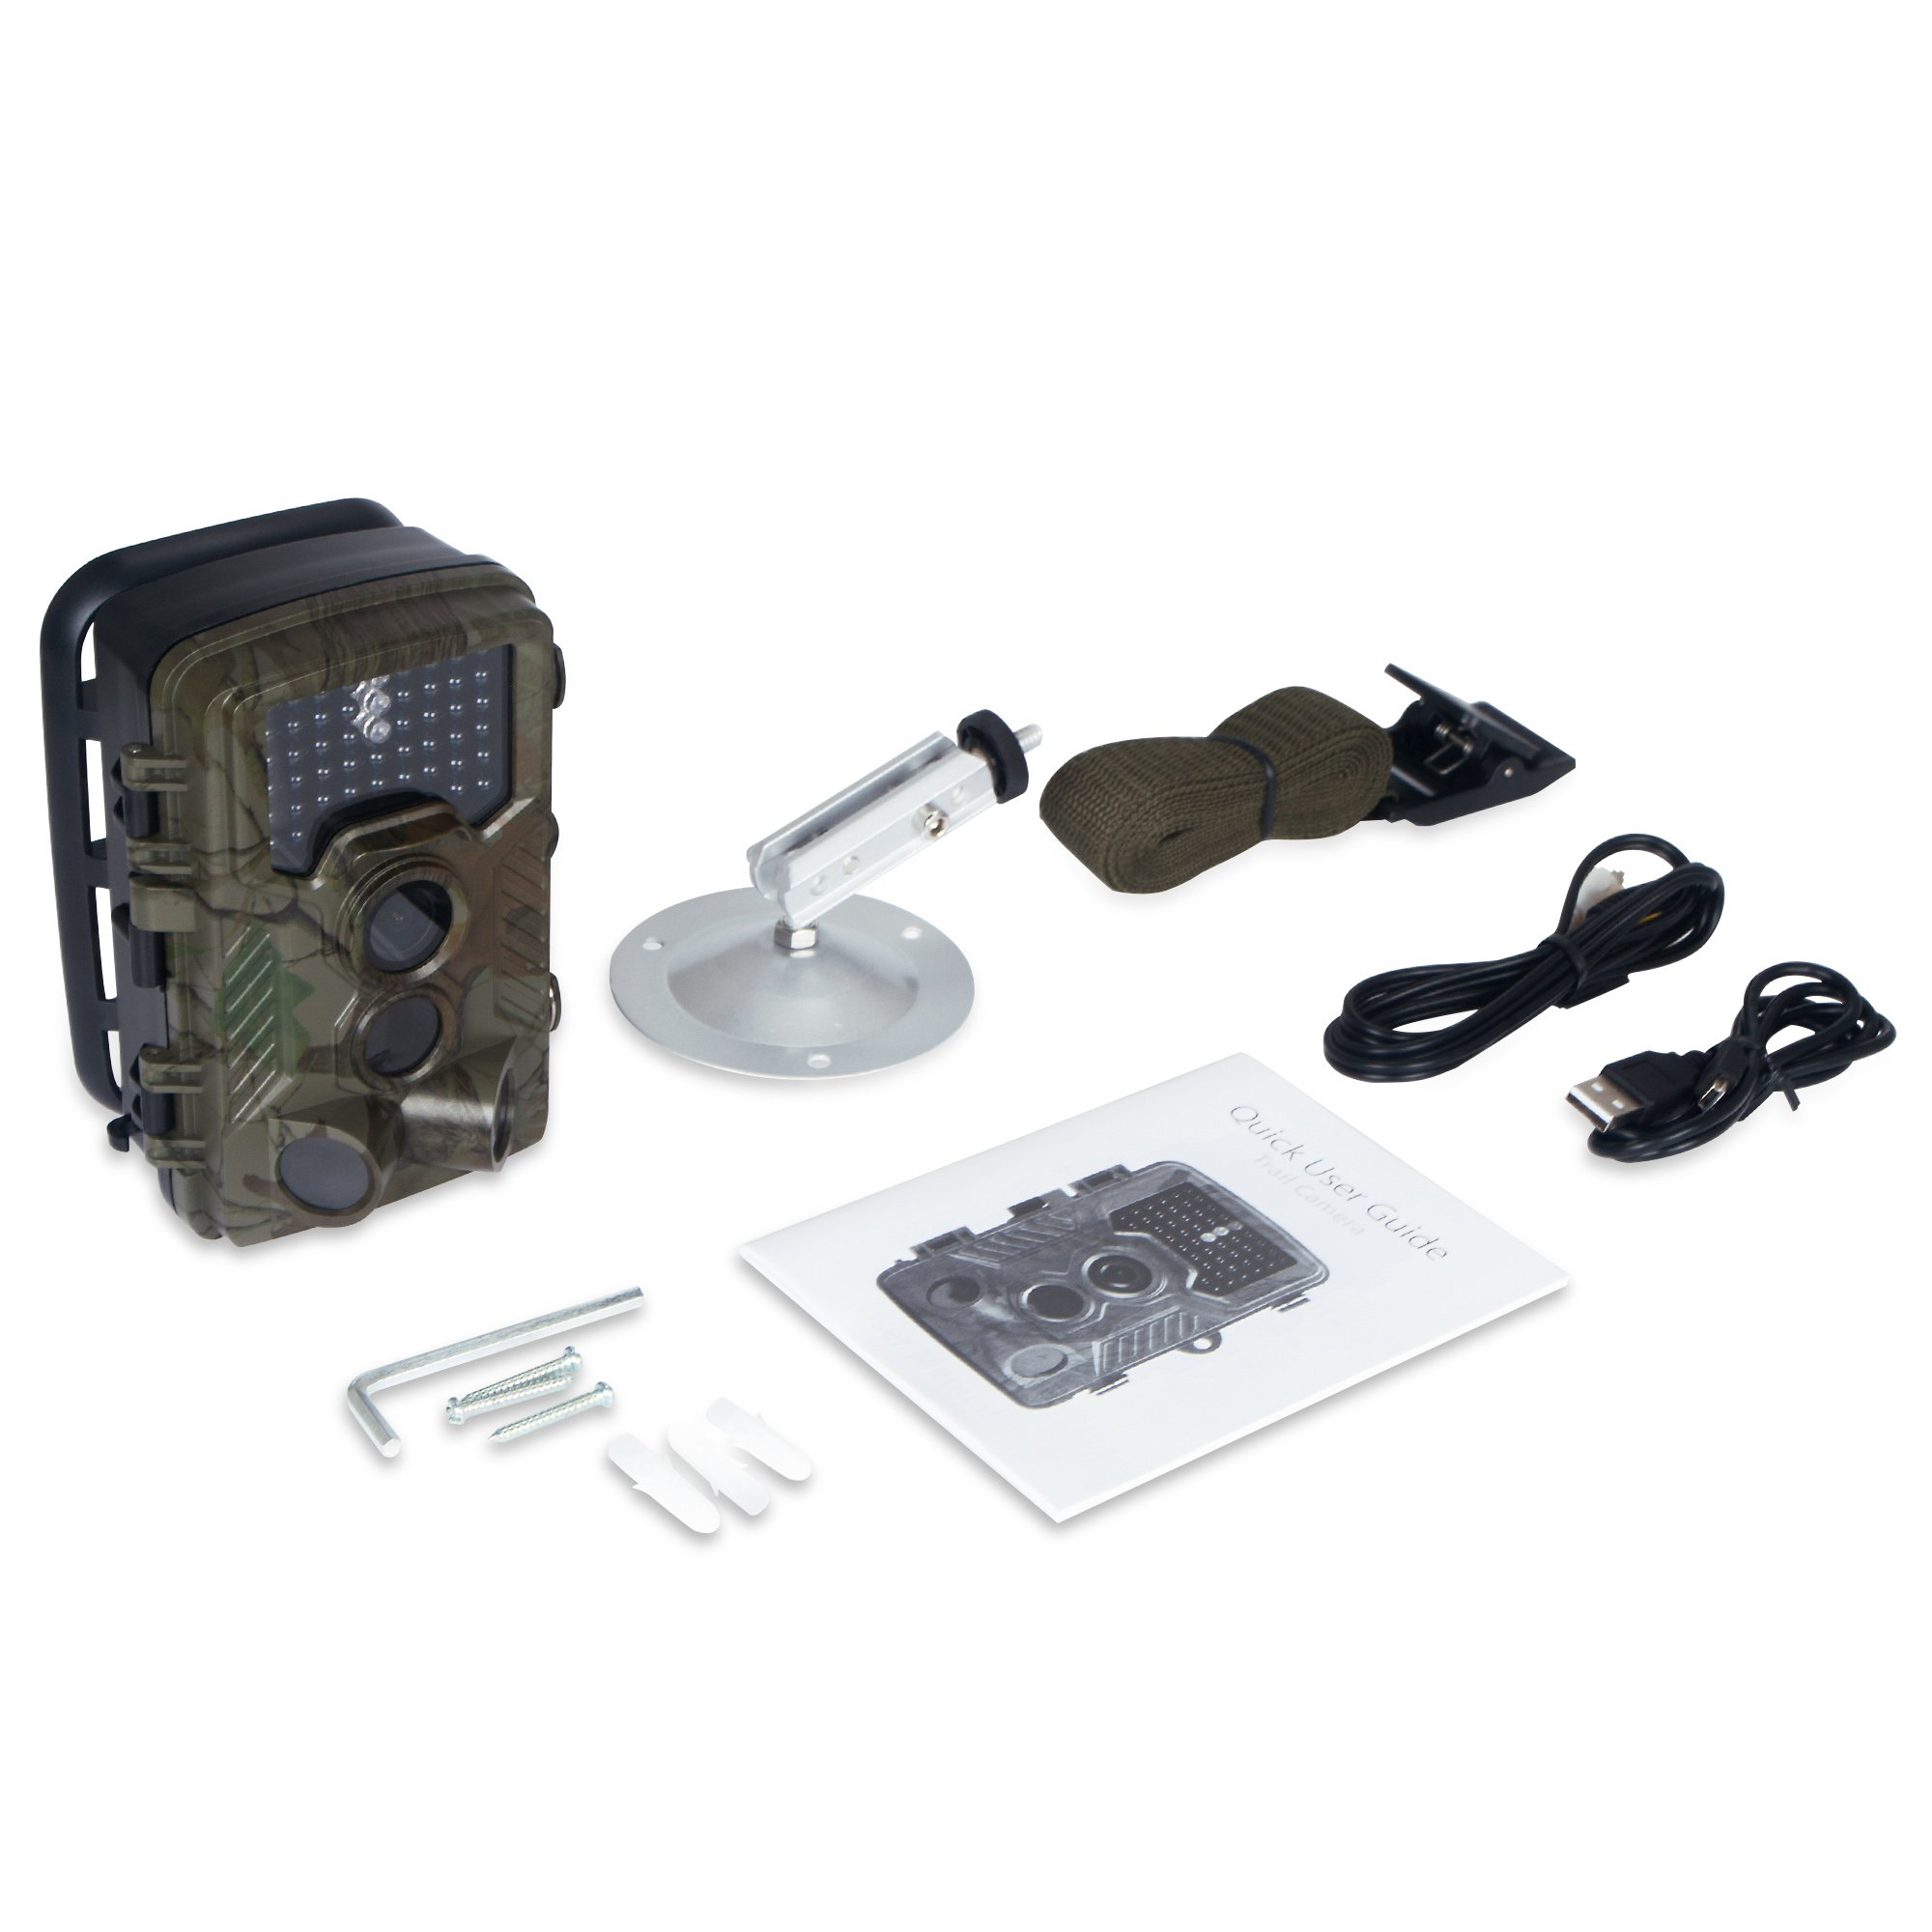 FLAGPOWER Hunting Trail Camera, 16MP 1080P 0.2s Trigger Time Wildlife Game Camera with 2.4'' LCD 850nm Upgrading IR LEDs Night Vision up to 75ft/2.3m IP56 Spray Water Protected Design by FLAGPOWER (Image #9)